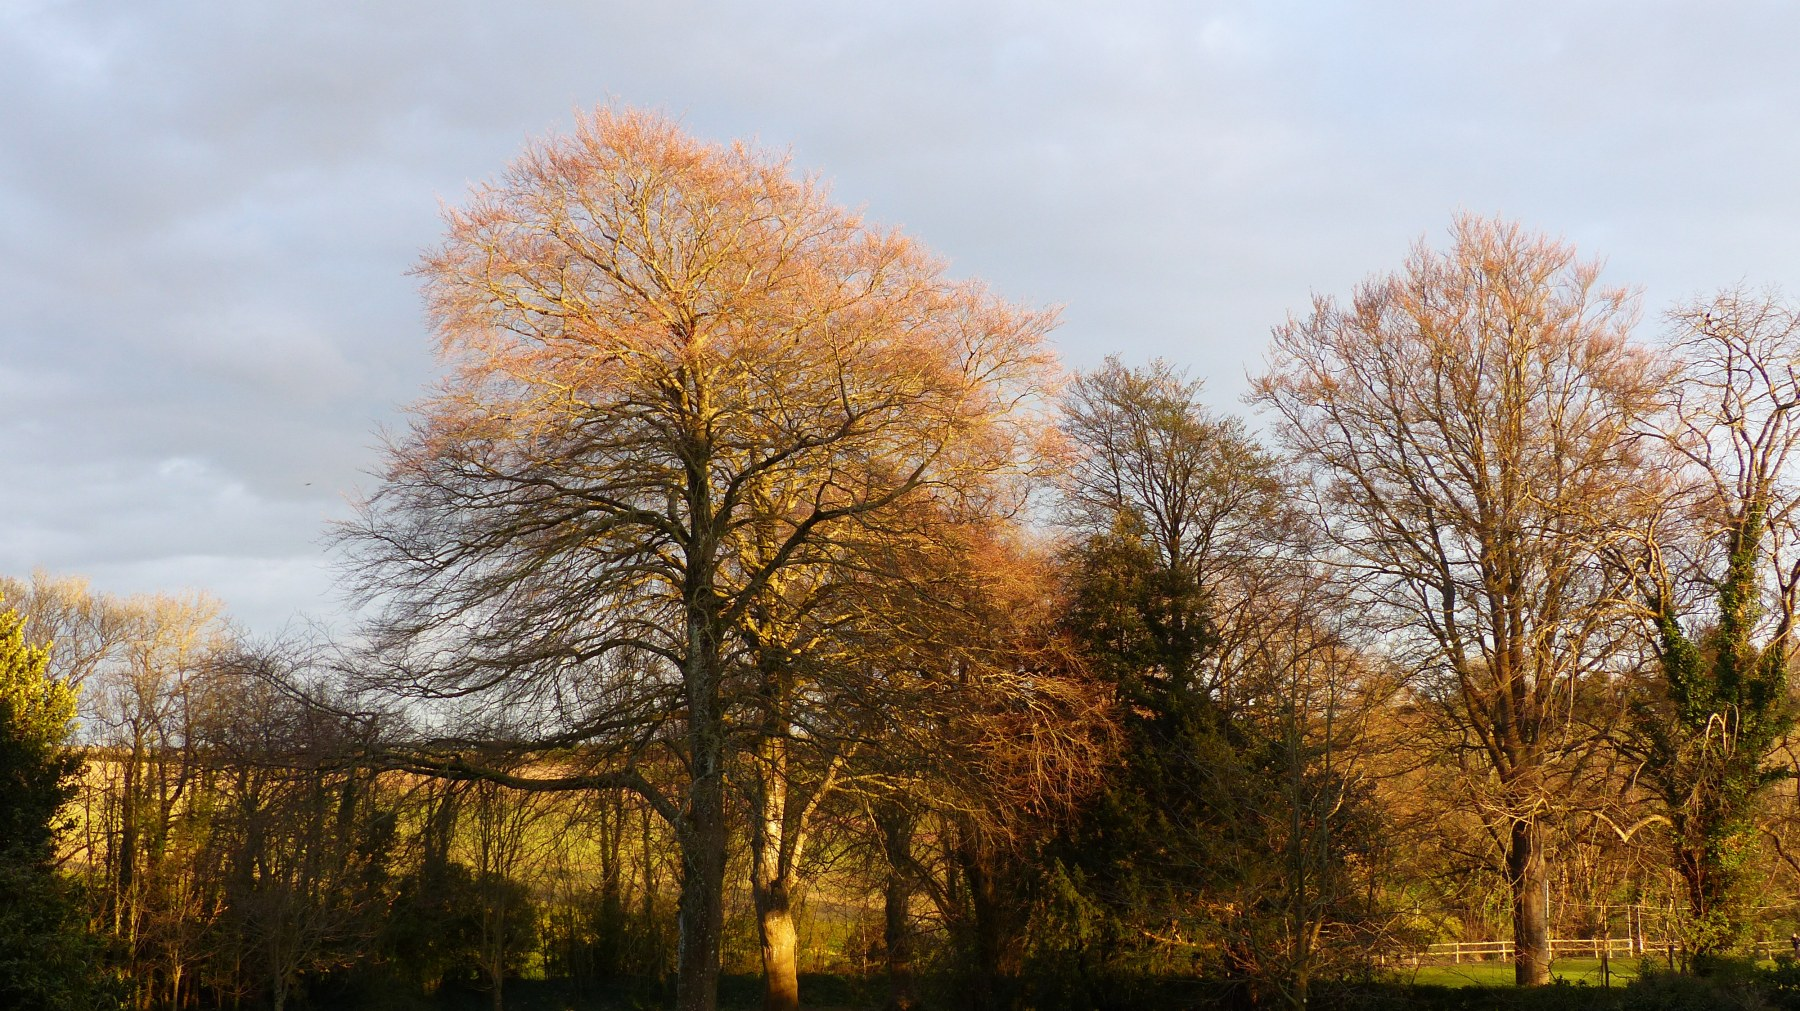 Tree tops lit by late evening sun in April